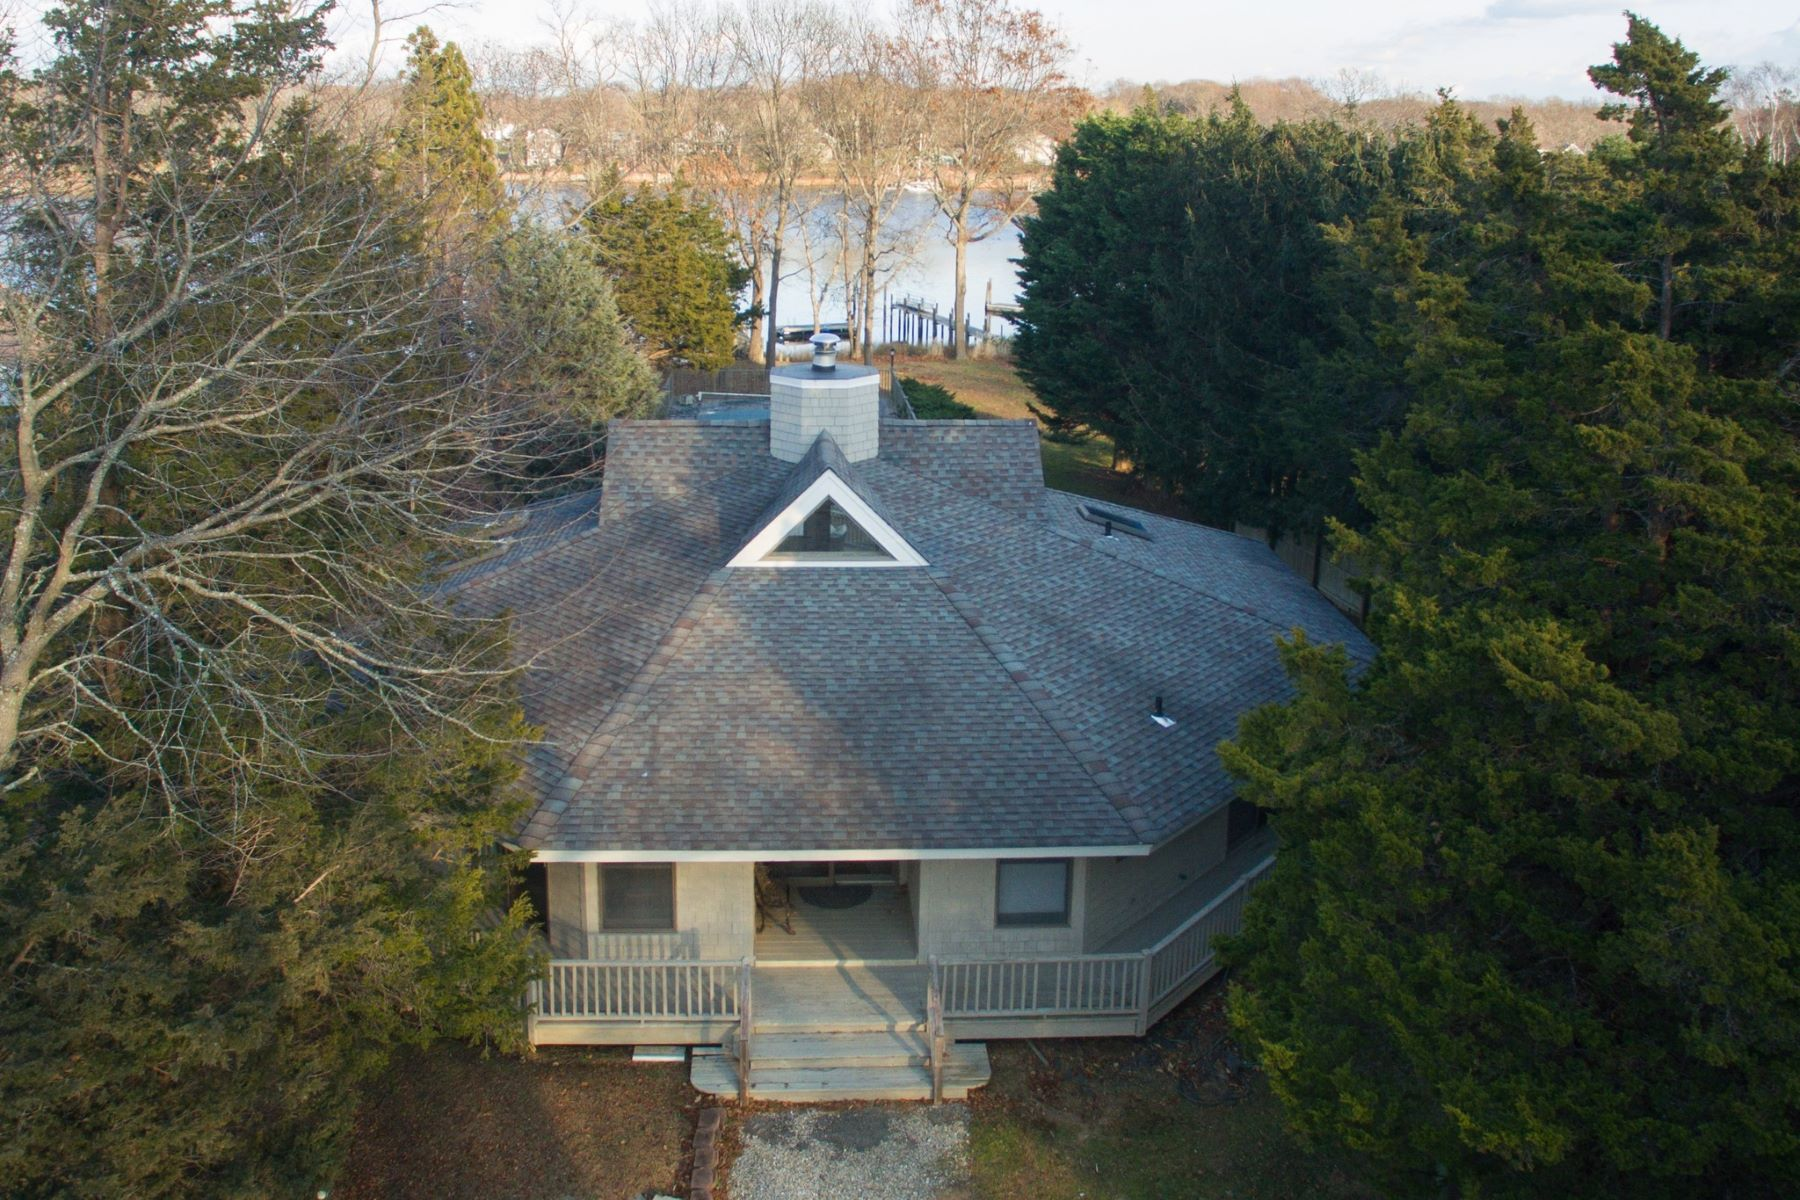 Single Family Home for Active at 15 Dickerson Dr , Shelter Island, NY 11964 15 Dickerson Dr Shelter Island, New York 11964 United States